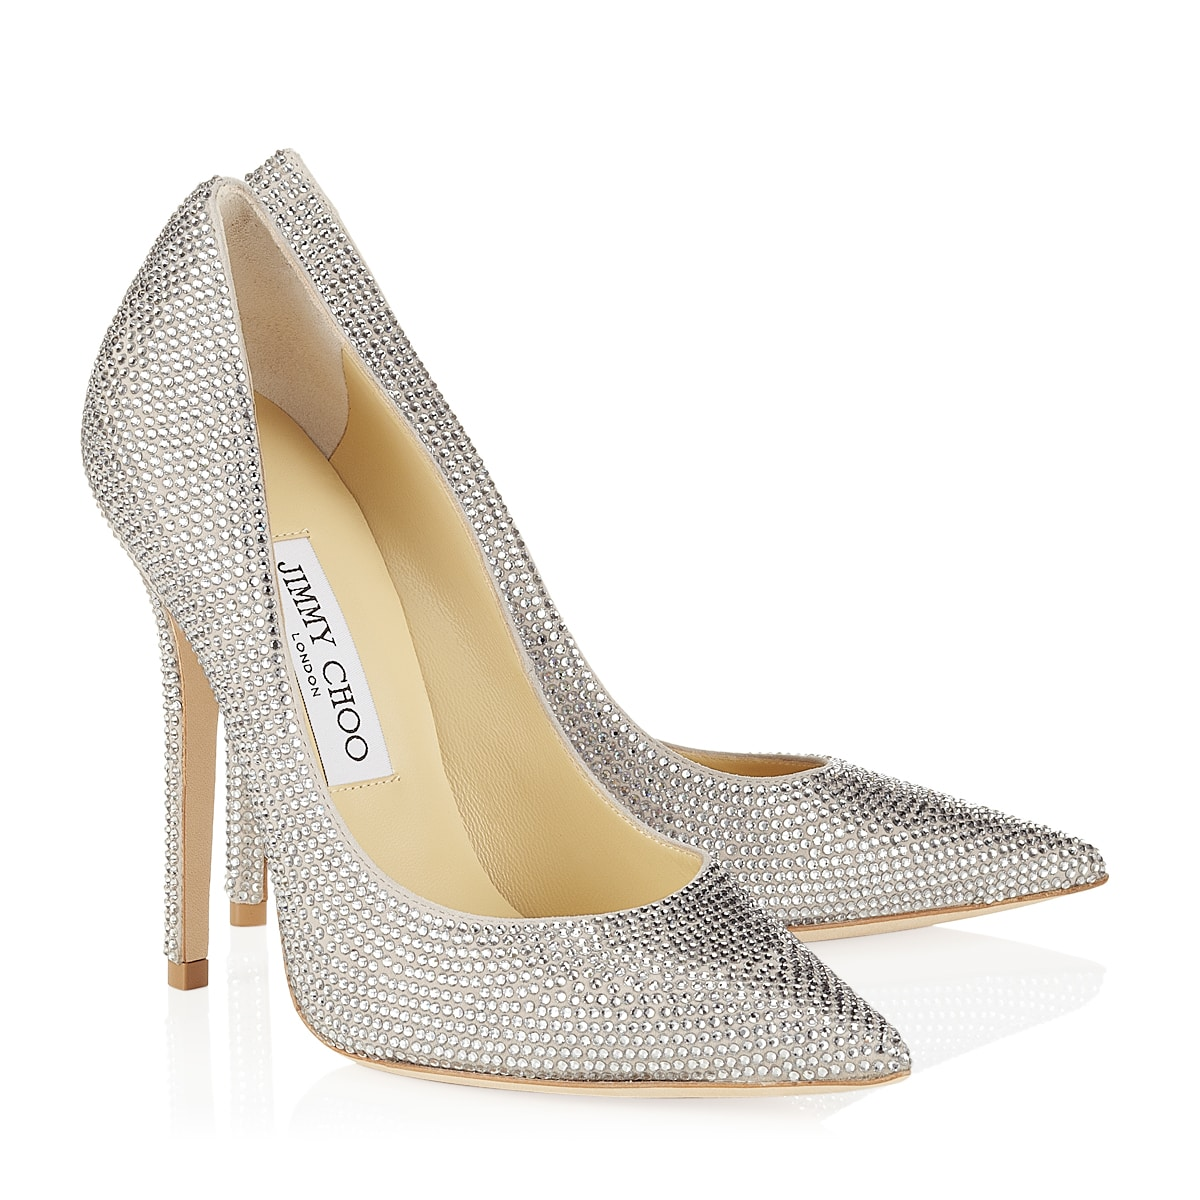 Jimmy Choo Cruise Shoe Collection